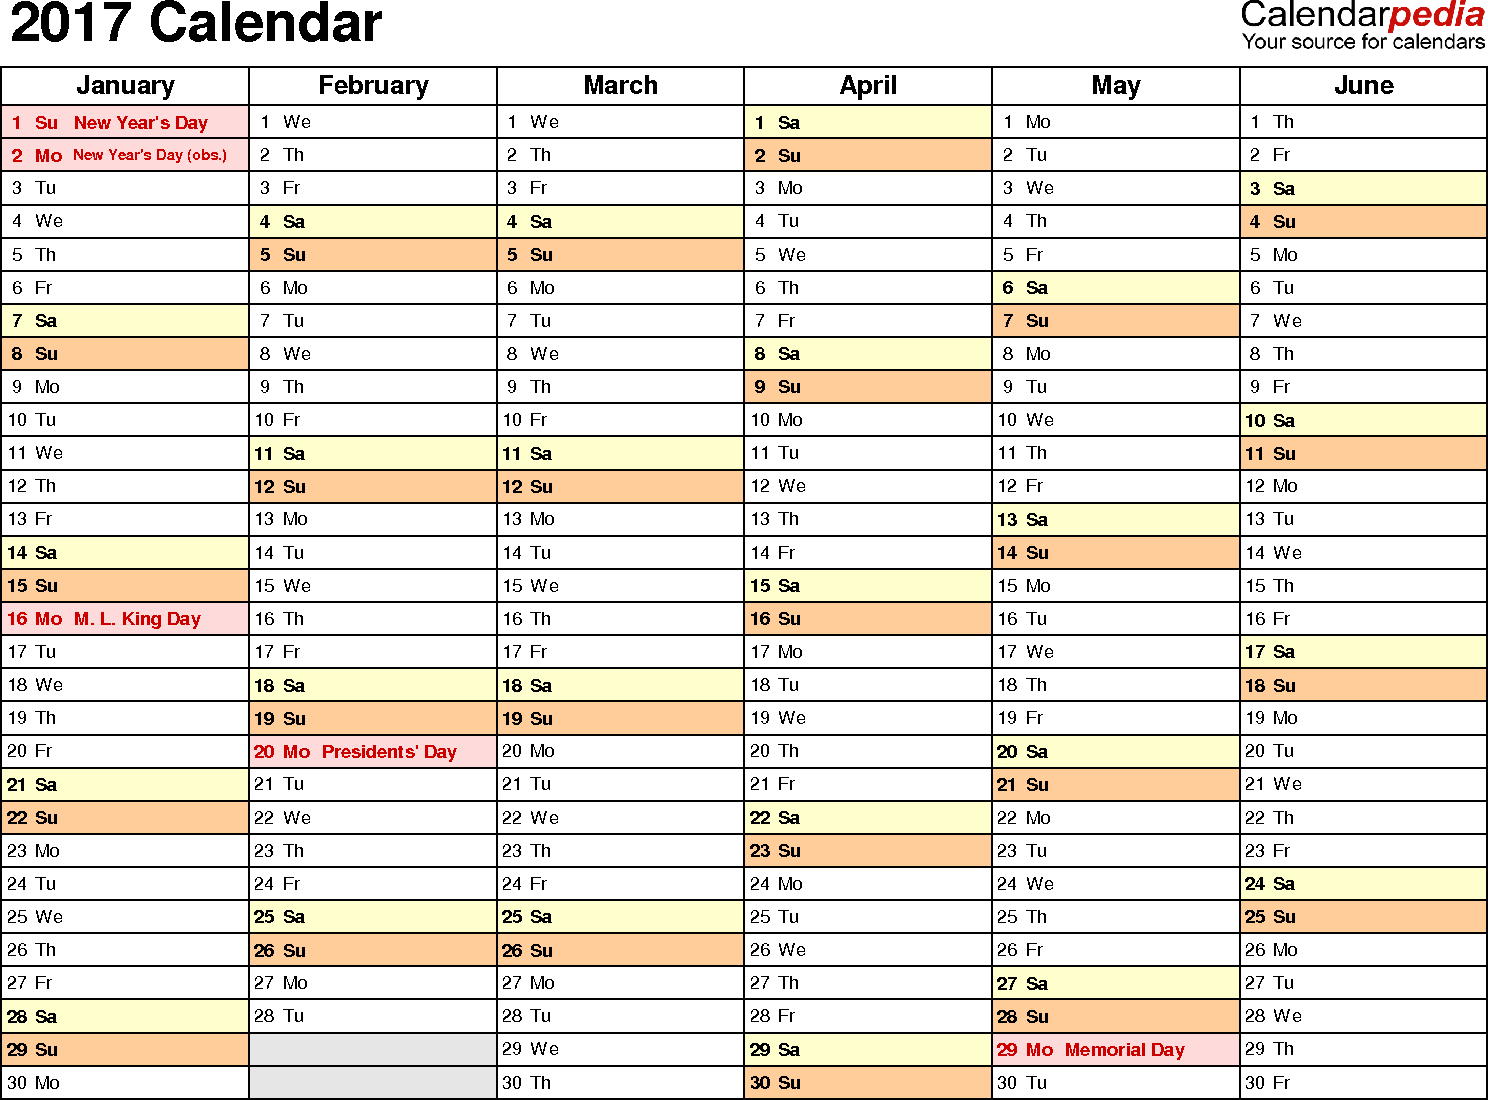 Ediblewildsus  Scenic  Calendar  Download  Free Printable Excel Templates Xls With Interesting Template   Calendar For Excel Months Horizontally  Pages Landscape Orientation With Extraordinary Excel Hide Cells Also Matlab Export To Excel In Addition How To Strikethrough Text In Excel And How Do I Make A Drop Down List In Excel As Well As Excel Checkmark Additionally Import Txt To Excel From Calendarpediacom With Ediblewildsus  Interesting  Calendar  Download  Free Printable Excel Templates Xls With Extraordinary Template   Calendar For Excel Months Horizontally  Pages Landscape Orientation And Scenic Excel Hide Cells Also Matlab Export To Excel In Addition How To Strikethrough Text In Excel From Calendarpediacom